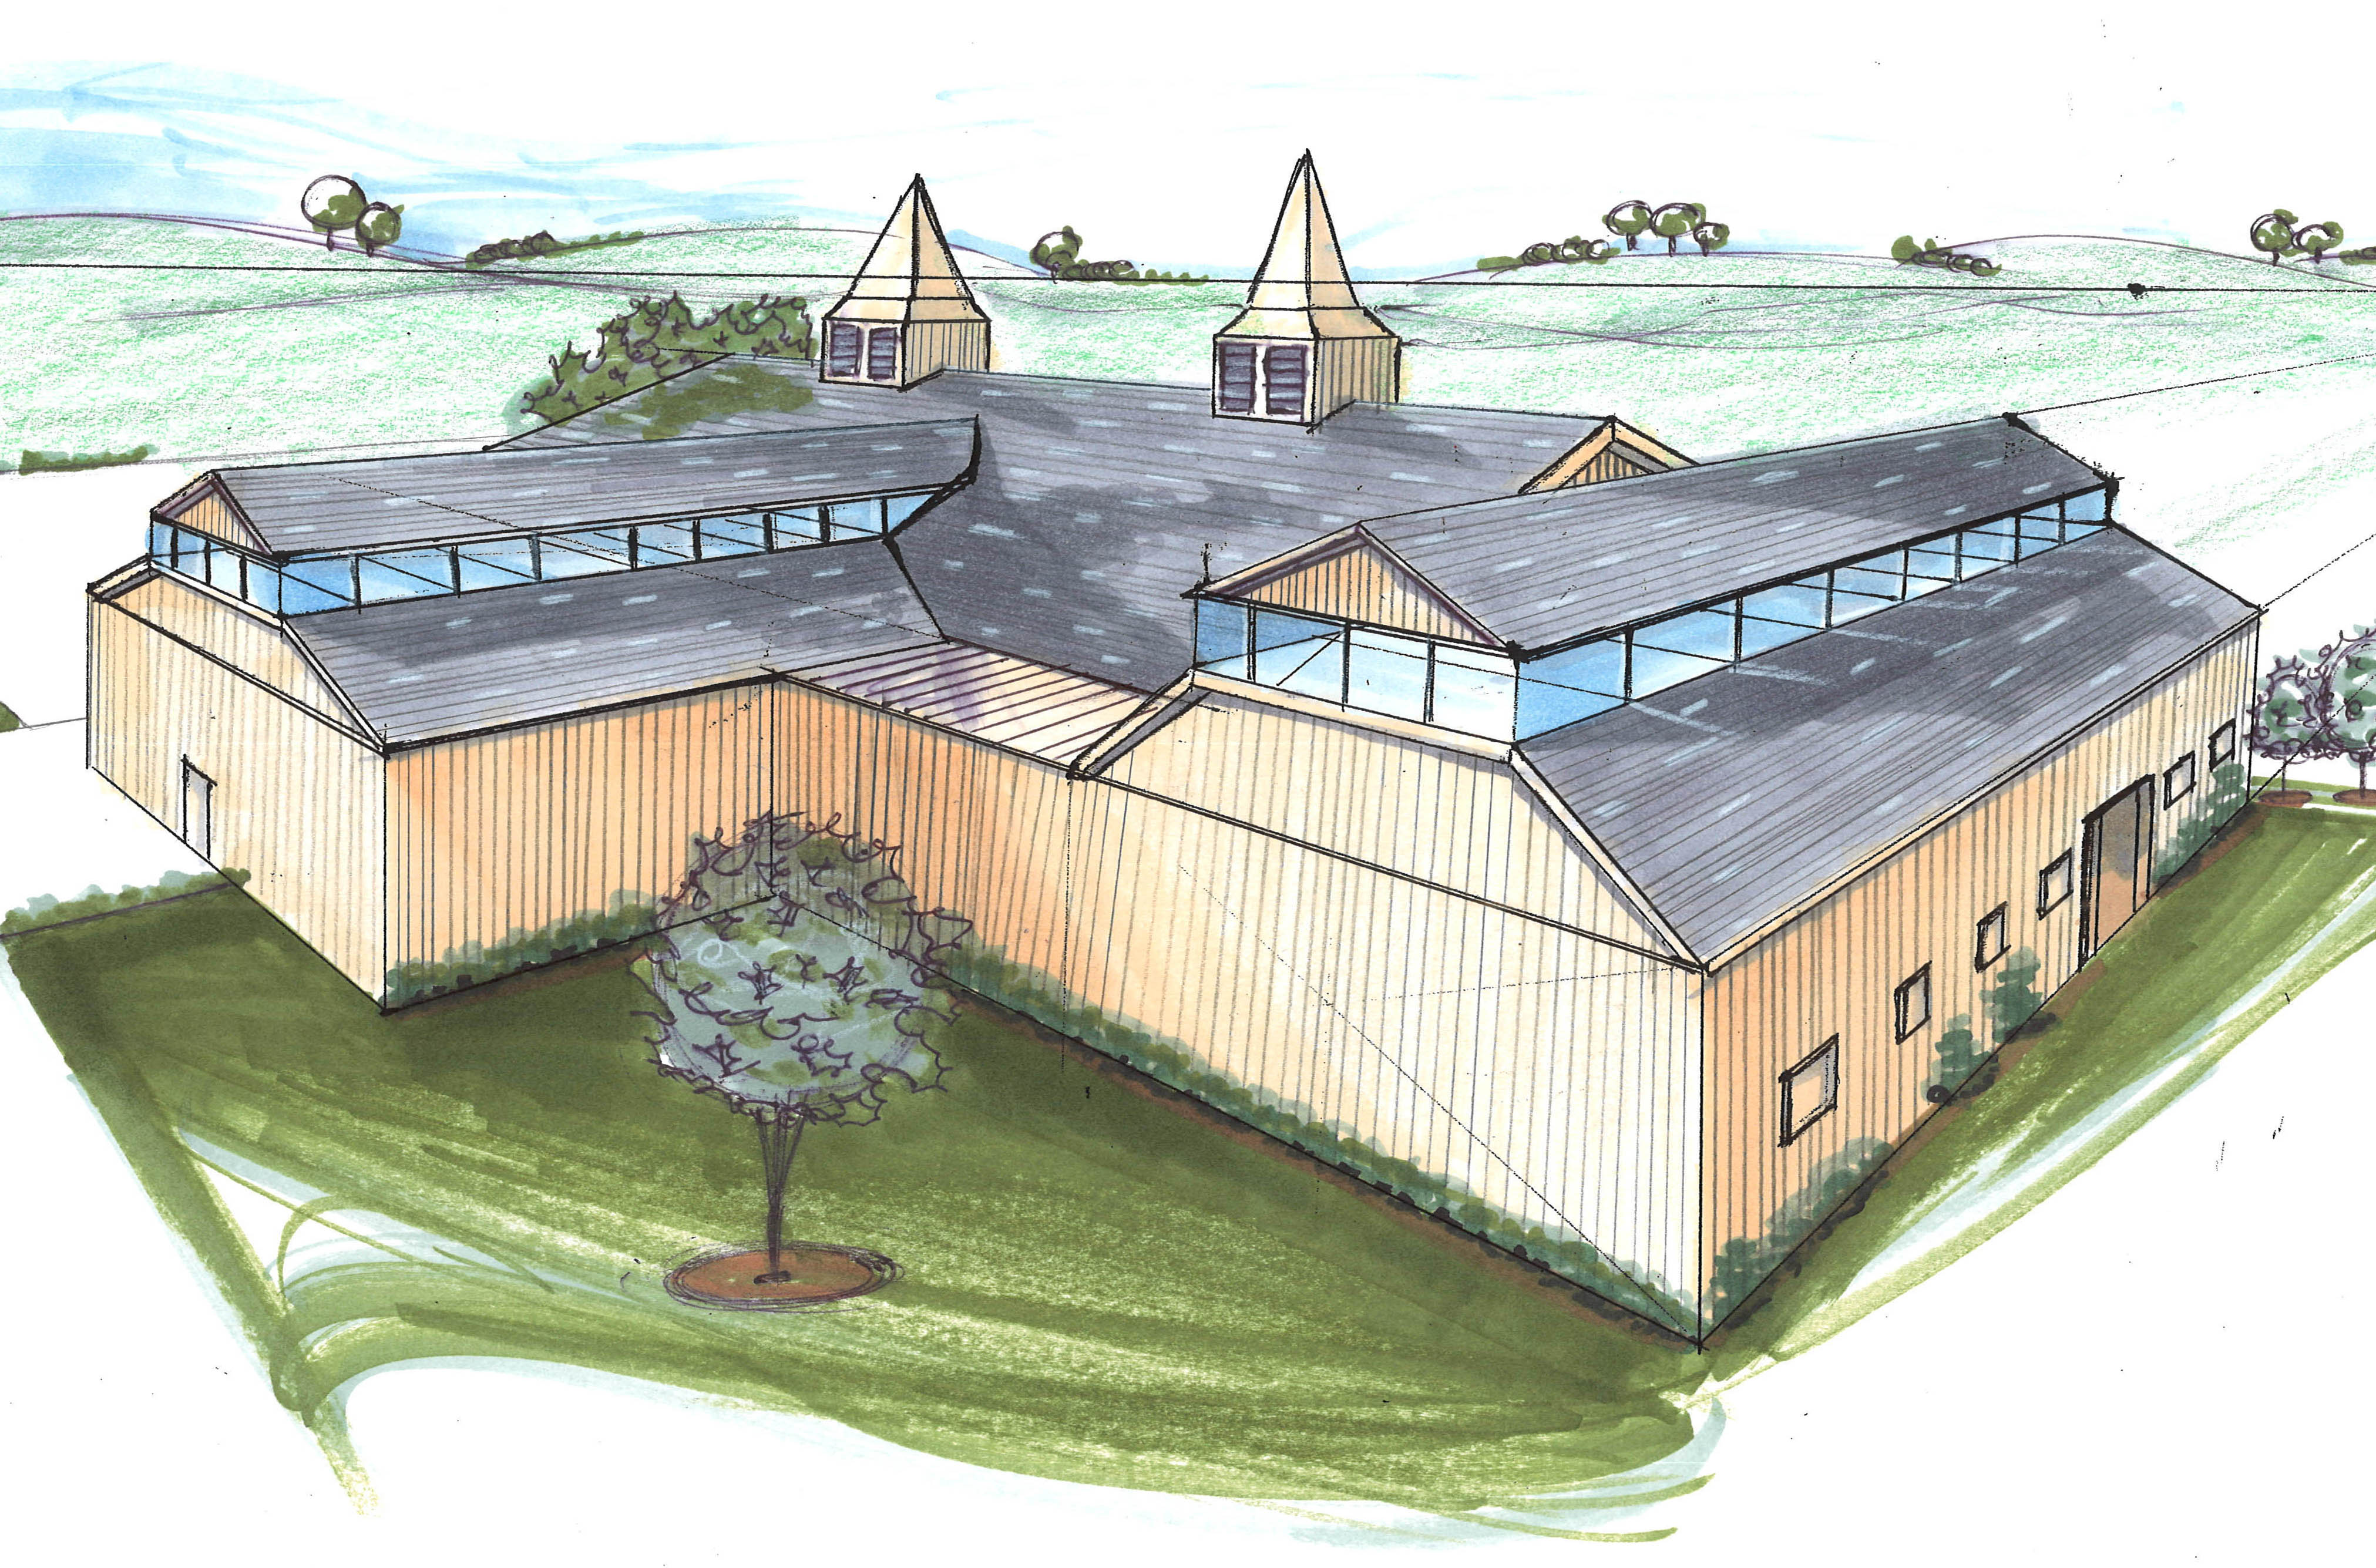 Mary Dennis designed the dream facility for Equine Alley, a center that uses equine therapy to help disabled children.